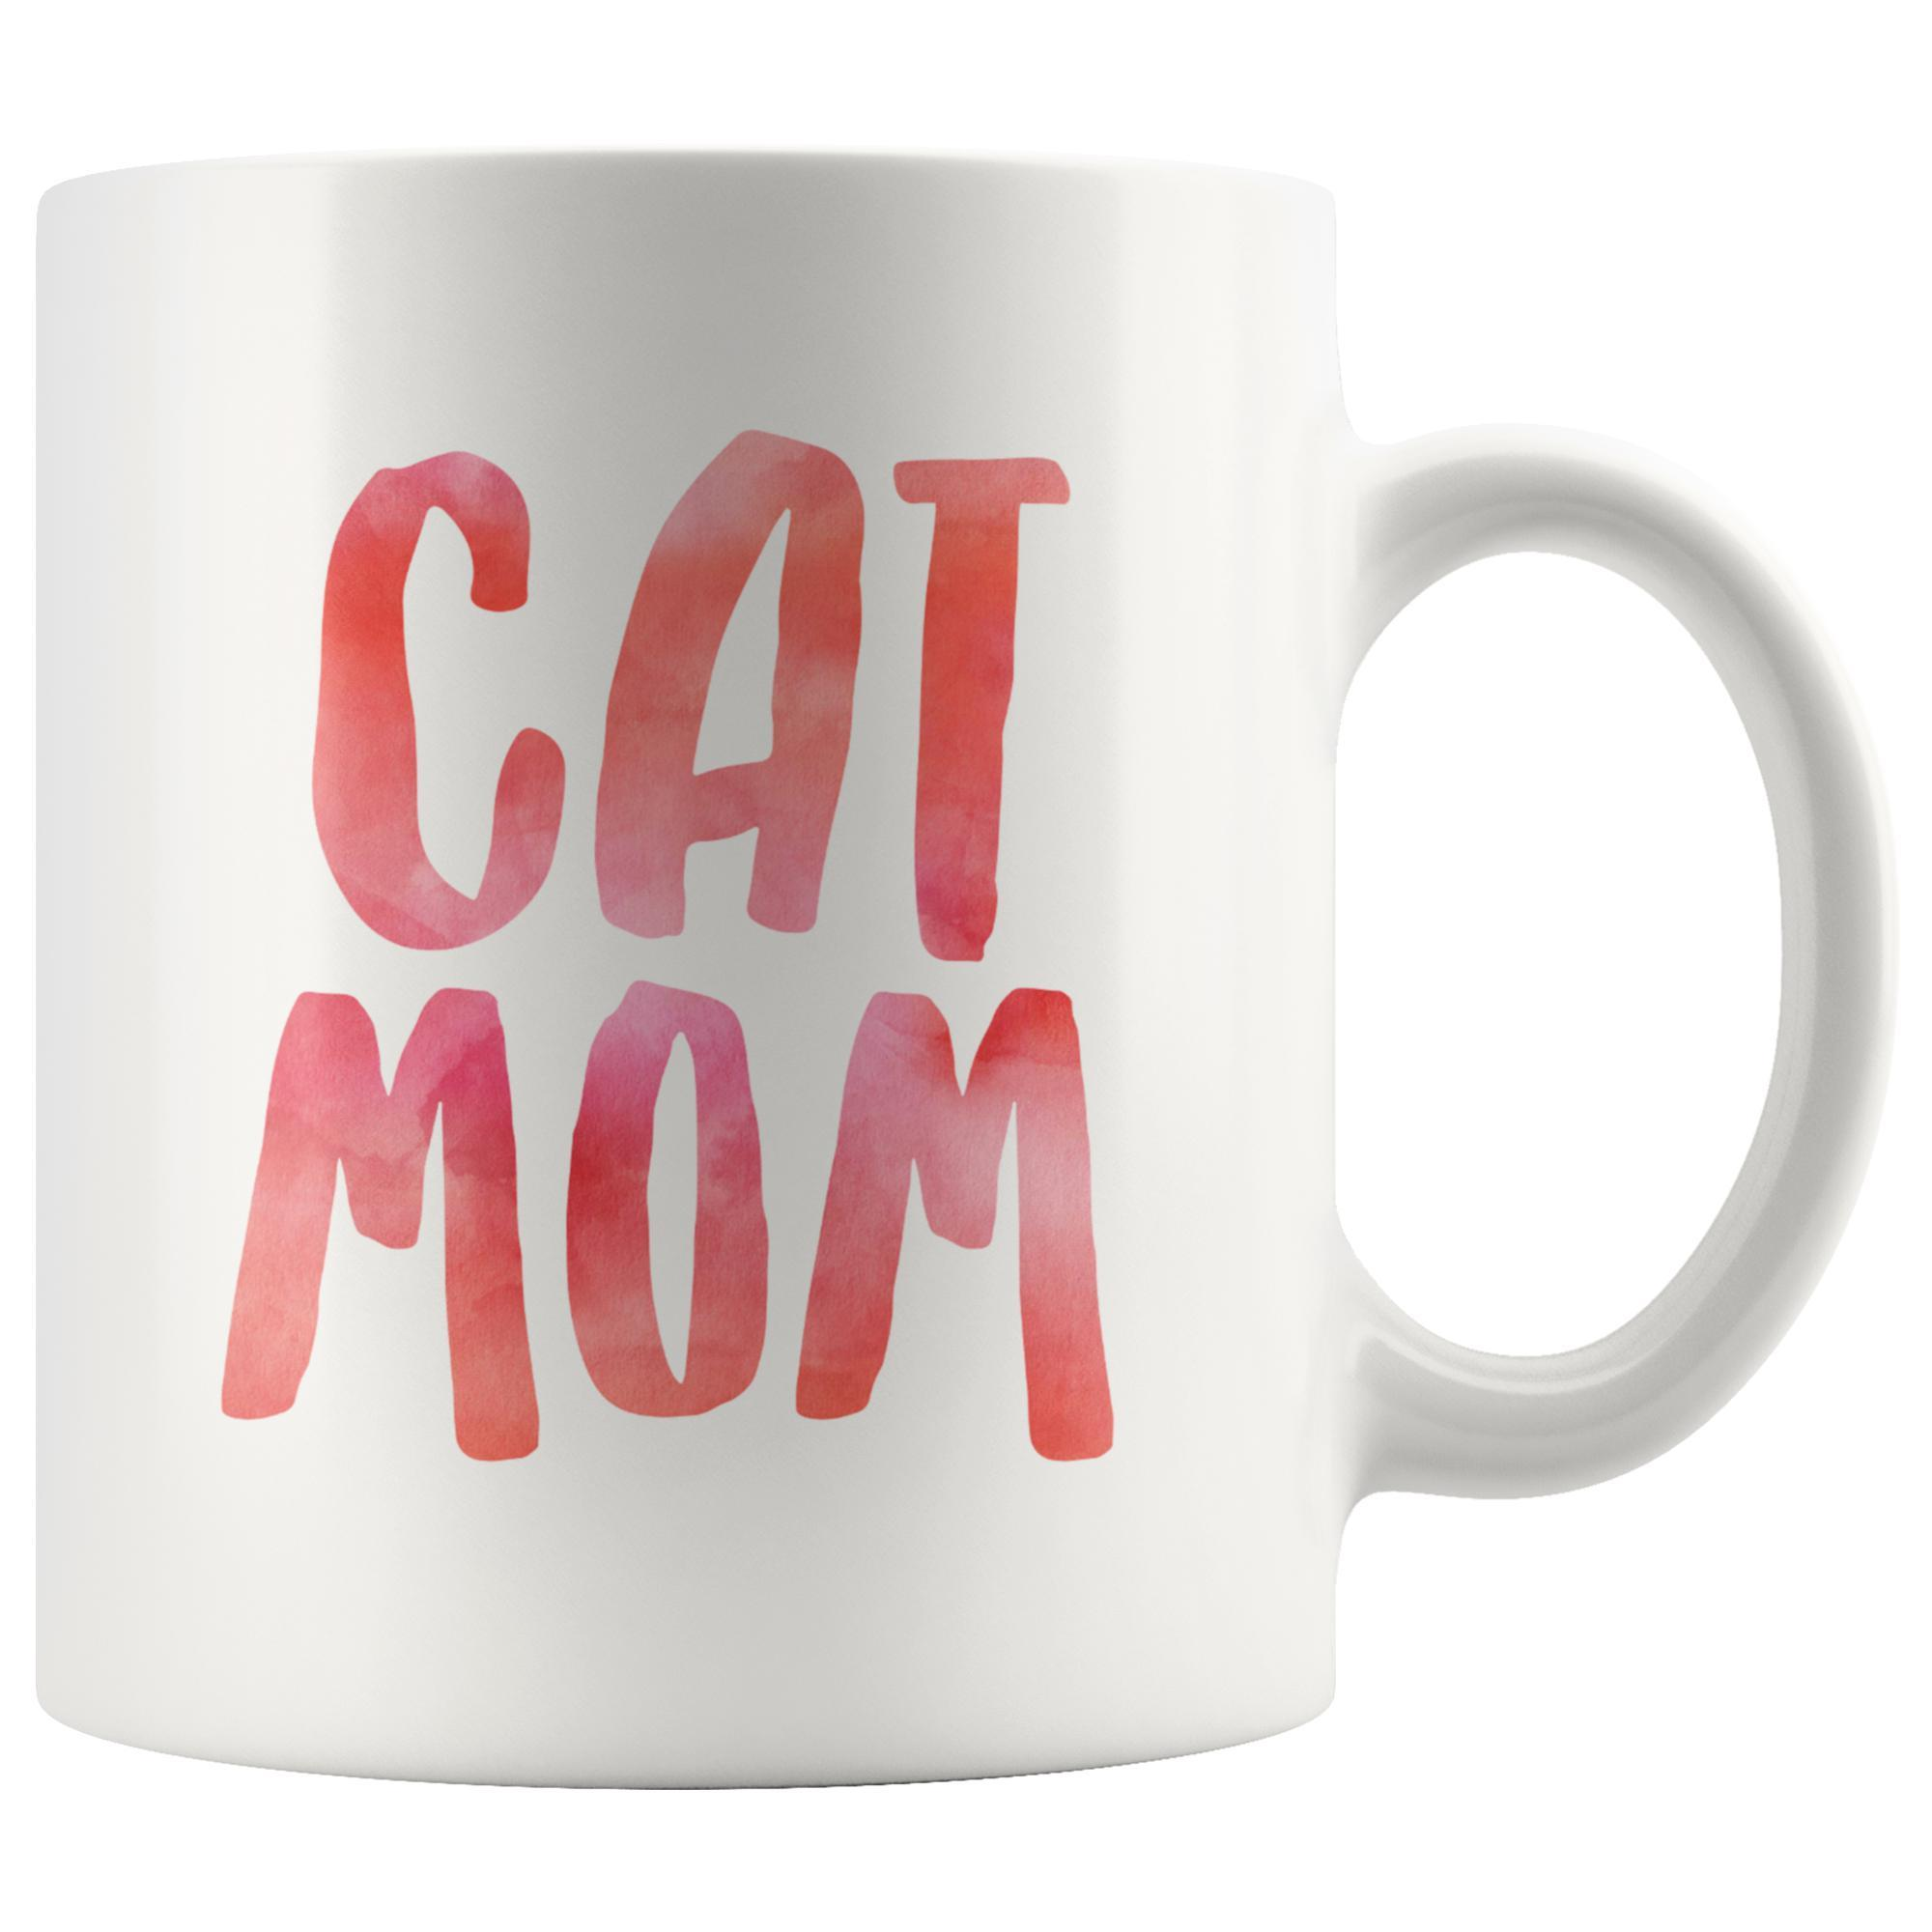 Colorful Cat Mom Mug